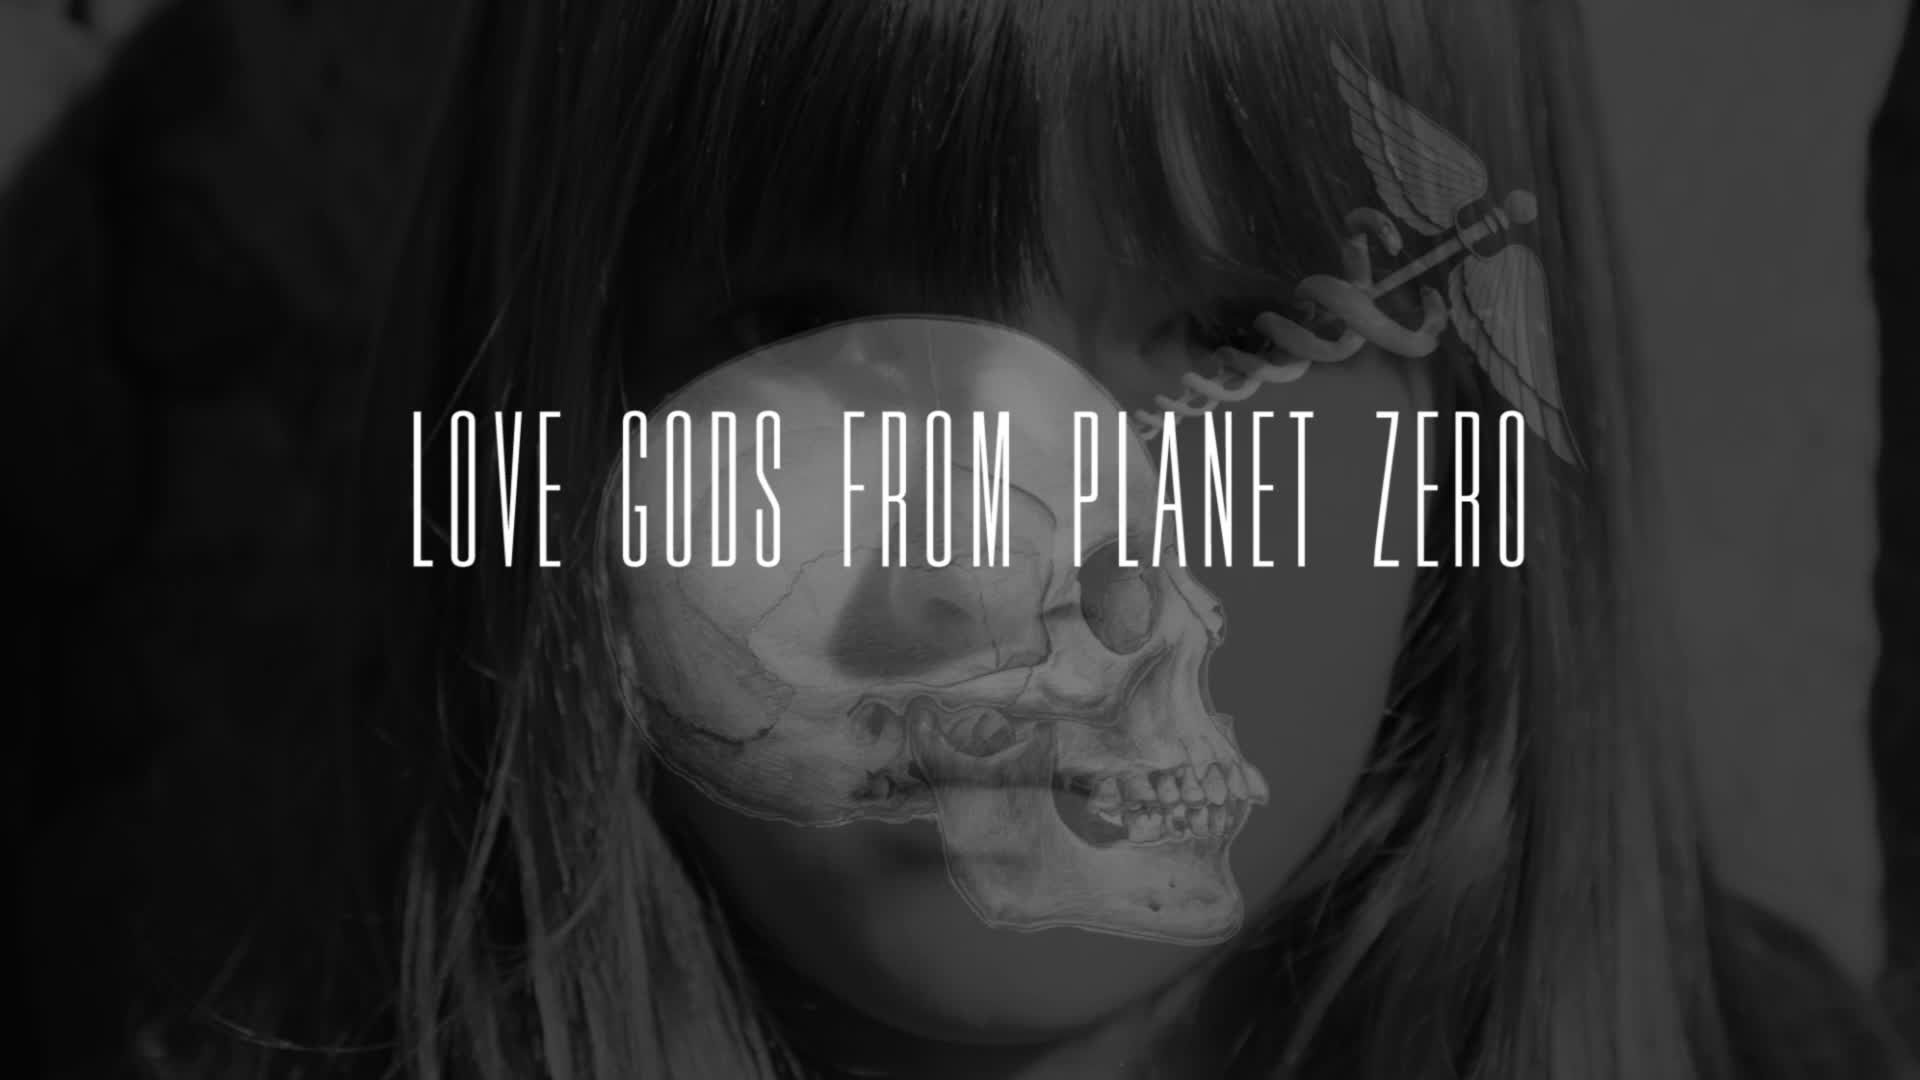 the Love Gods from Planet Zero full movie download in hindi